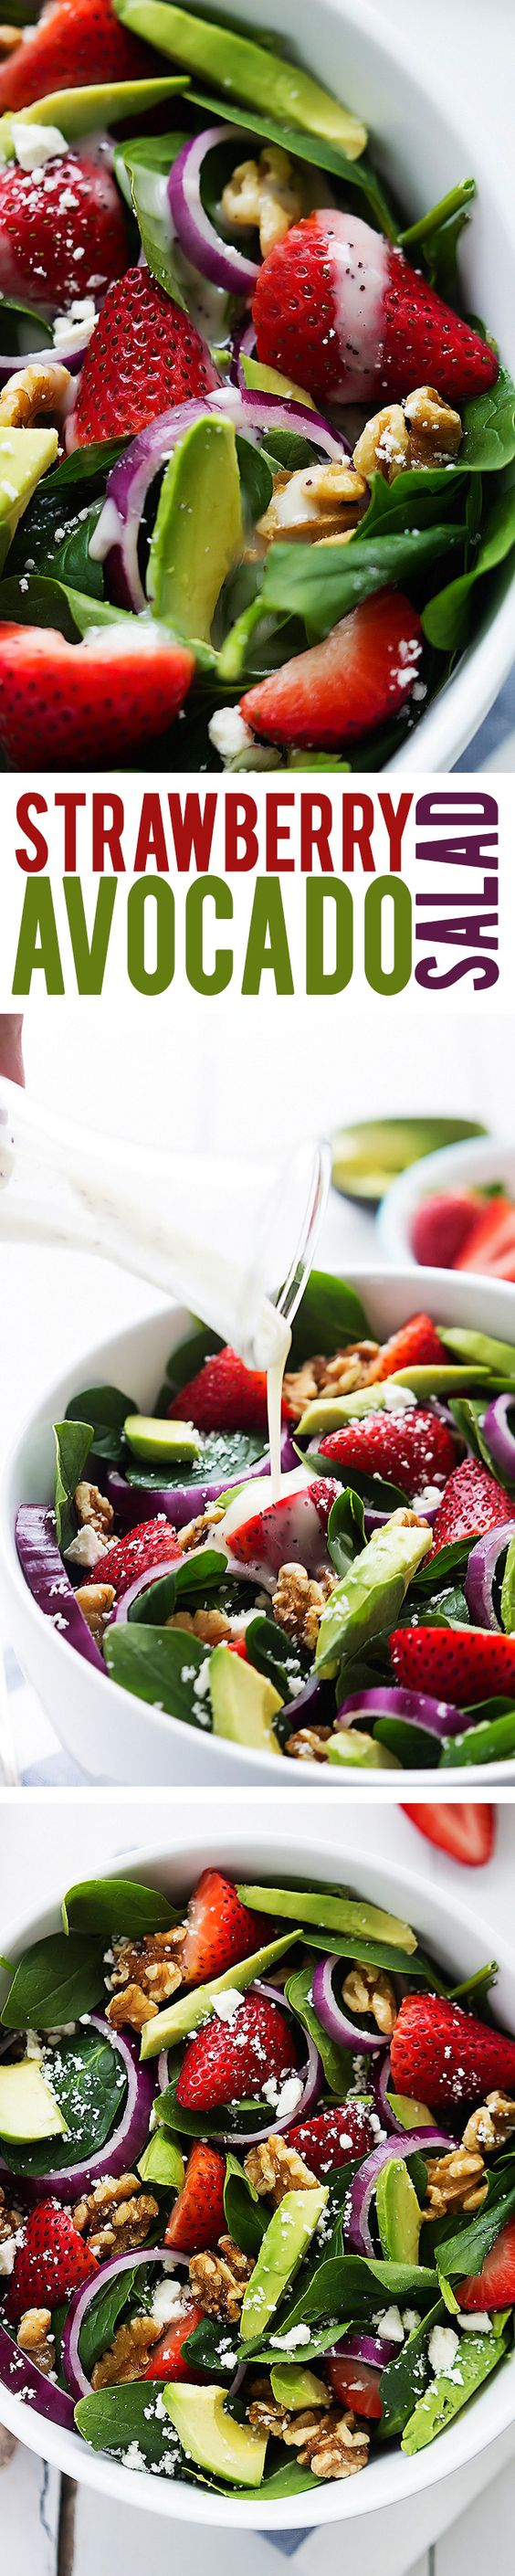 Strawberries, avocados, red onions, walnuts, and feta cheese all tossed with fresh baby spinach and creamy poppyseed dressing. | Creme de la Crumb: